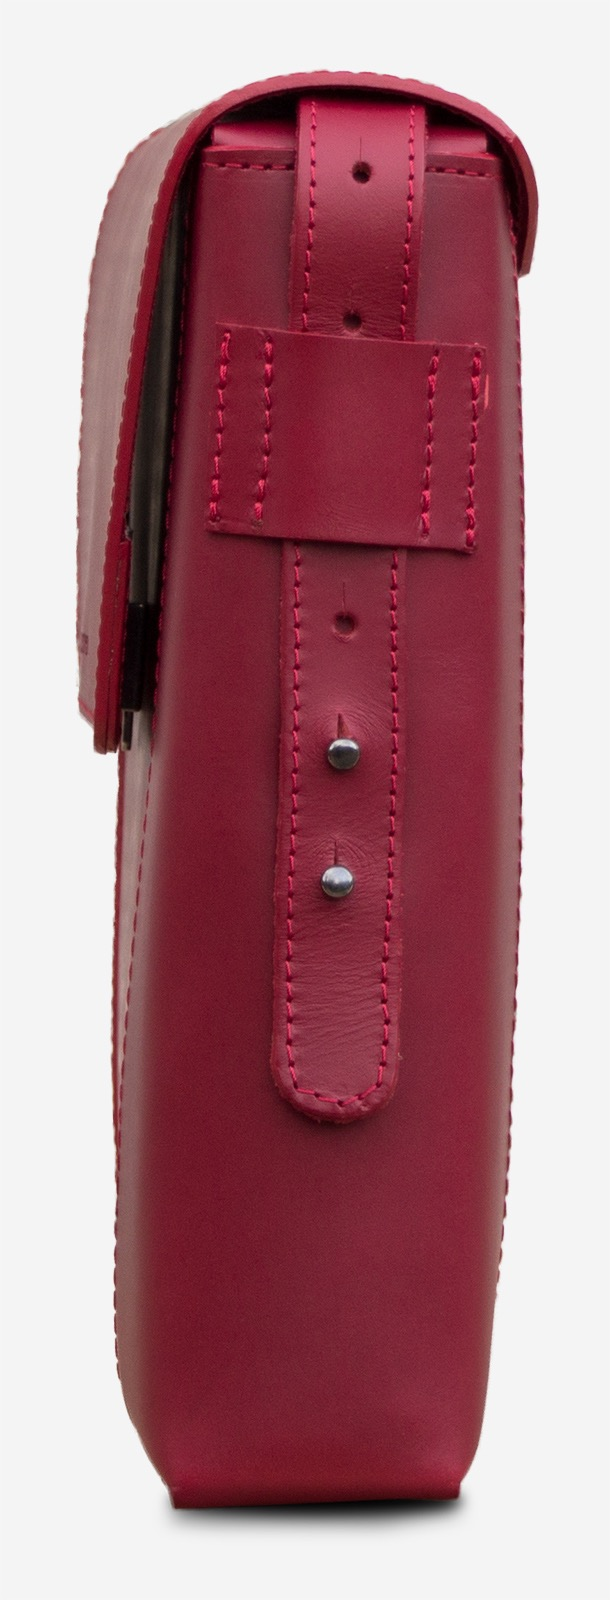 Side view of the slim red vegetable-tanned leather briefcase bag for women.